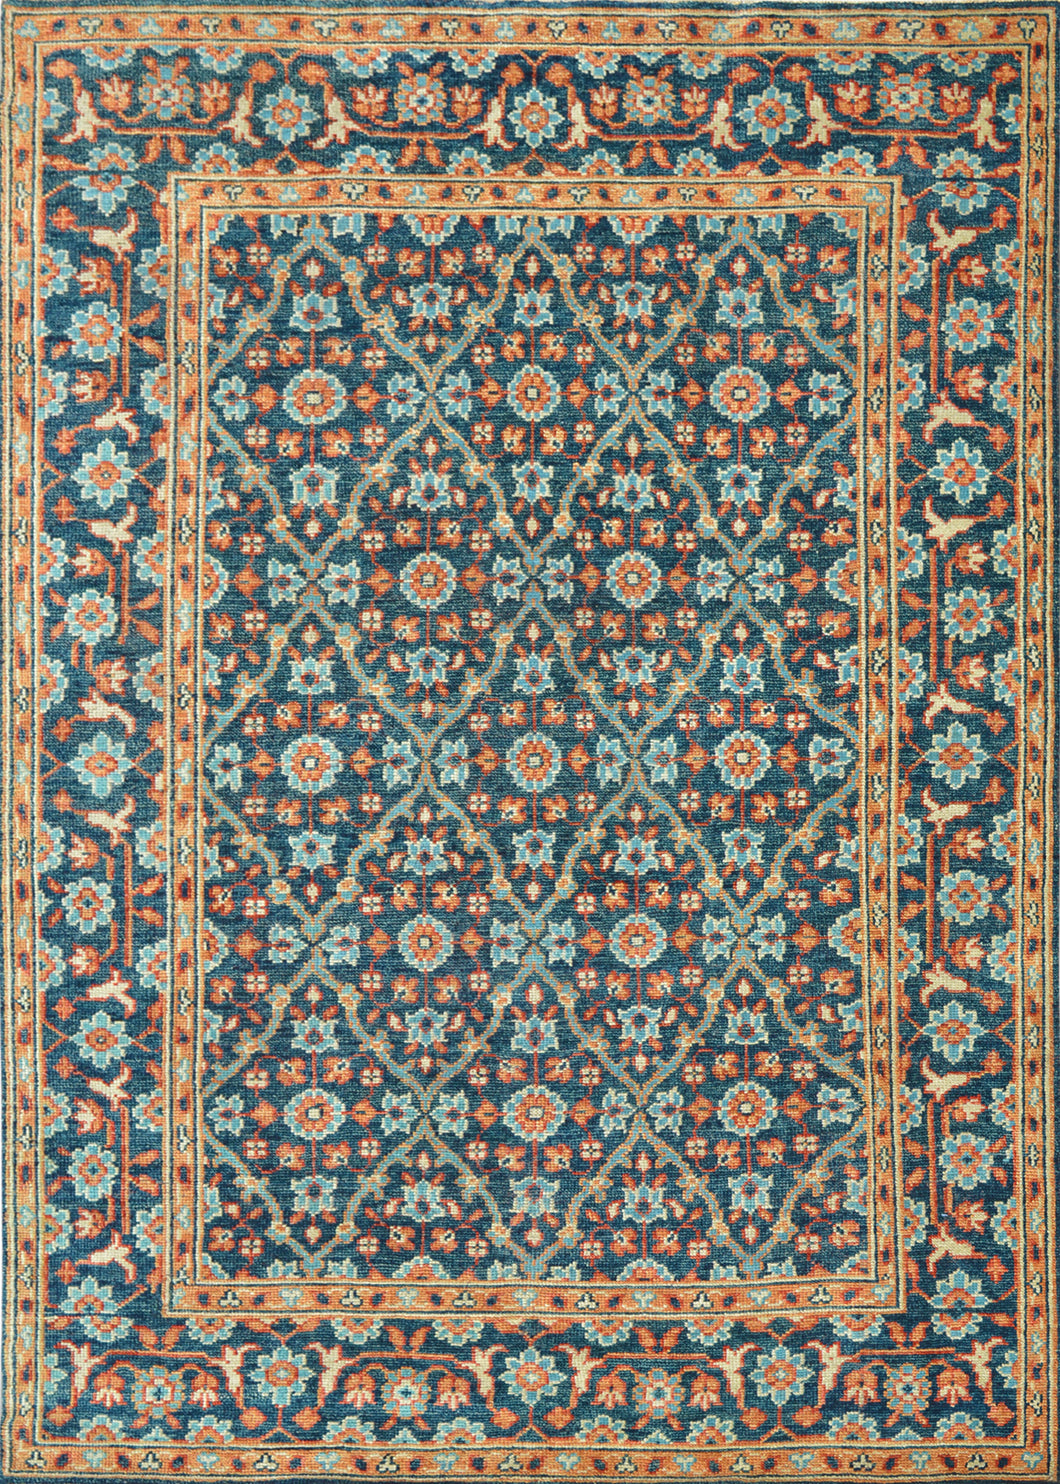 Soho Collection KHOTAN-32 BLBL